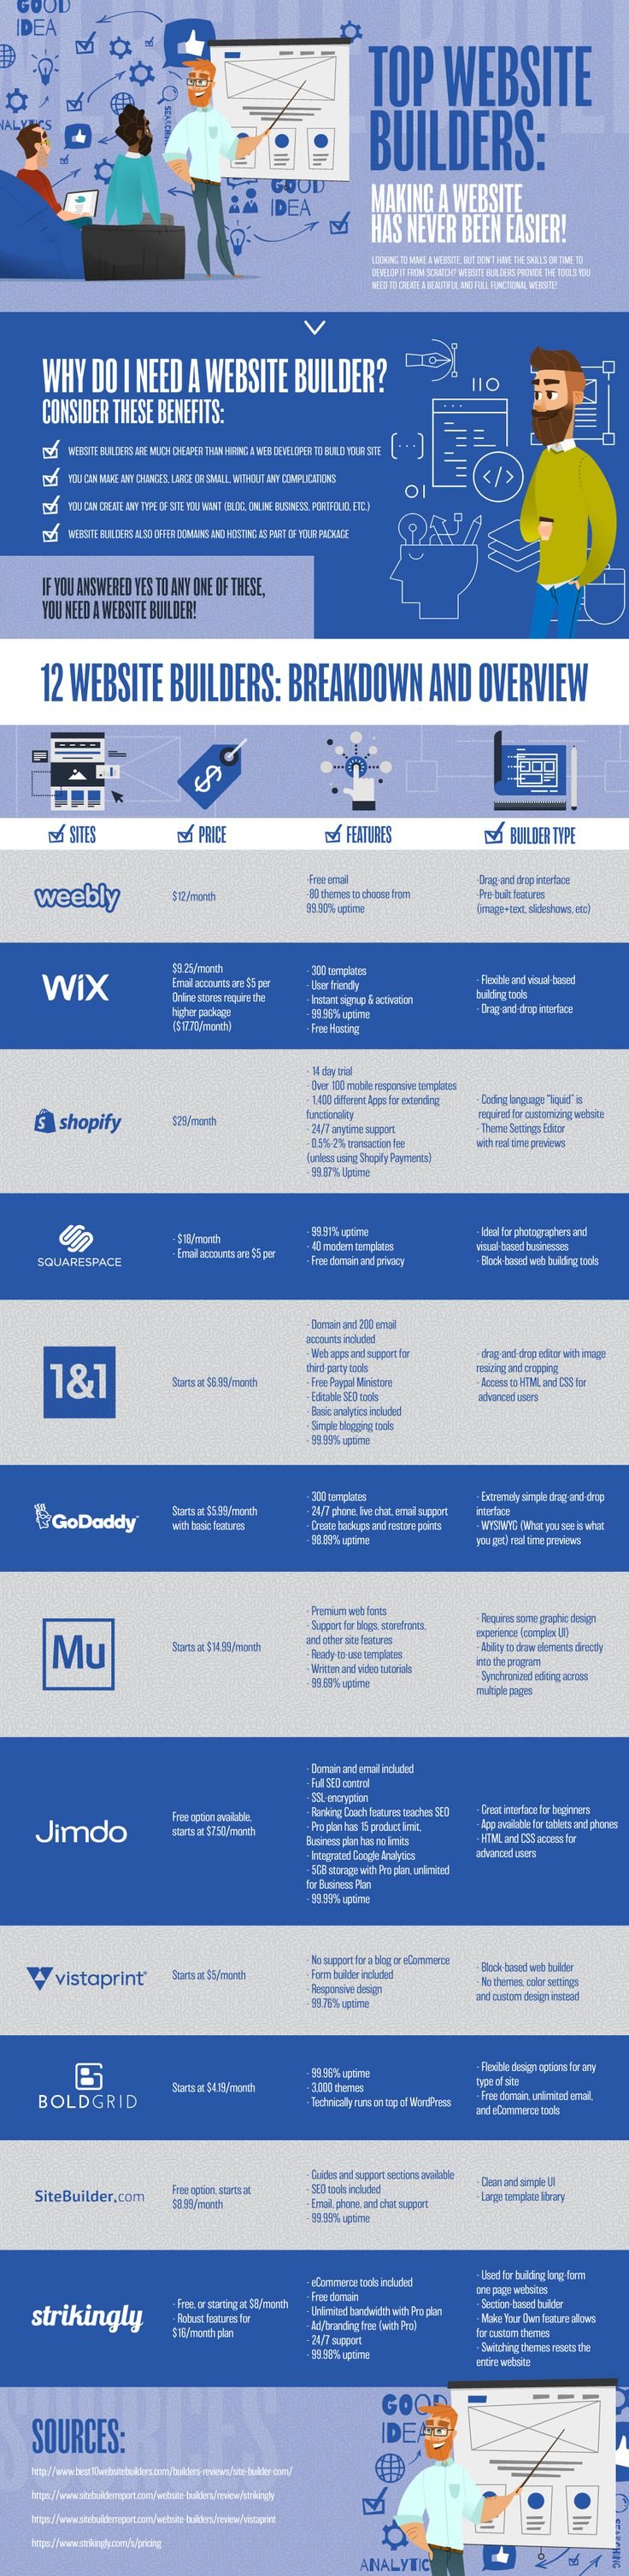 best free website builders comparison chart. Get a glimpse at some popular website builders you can use for your therapy website.